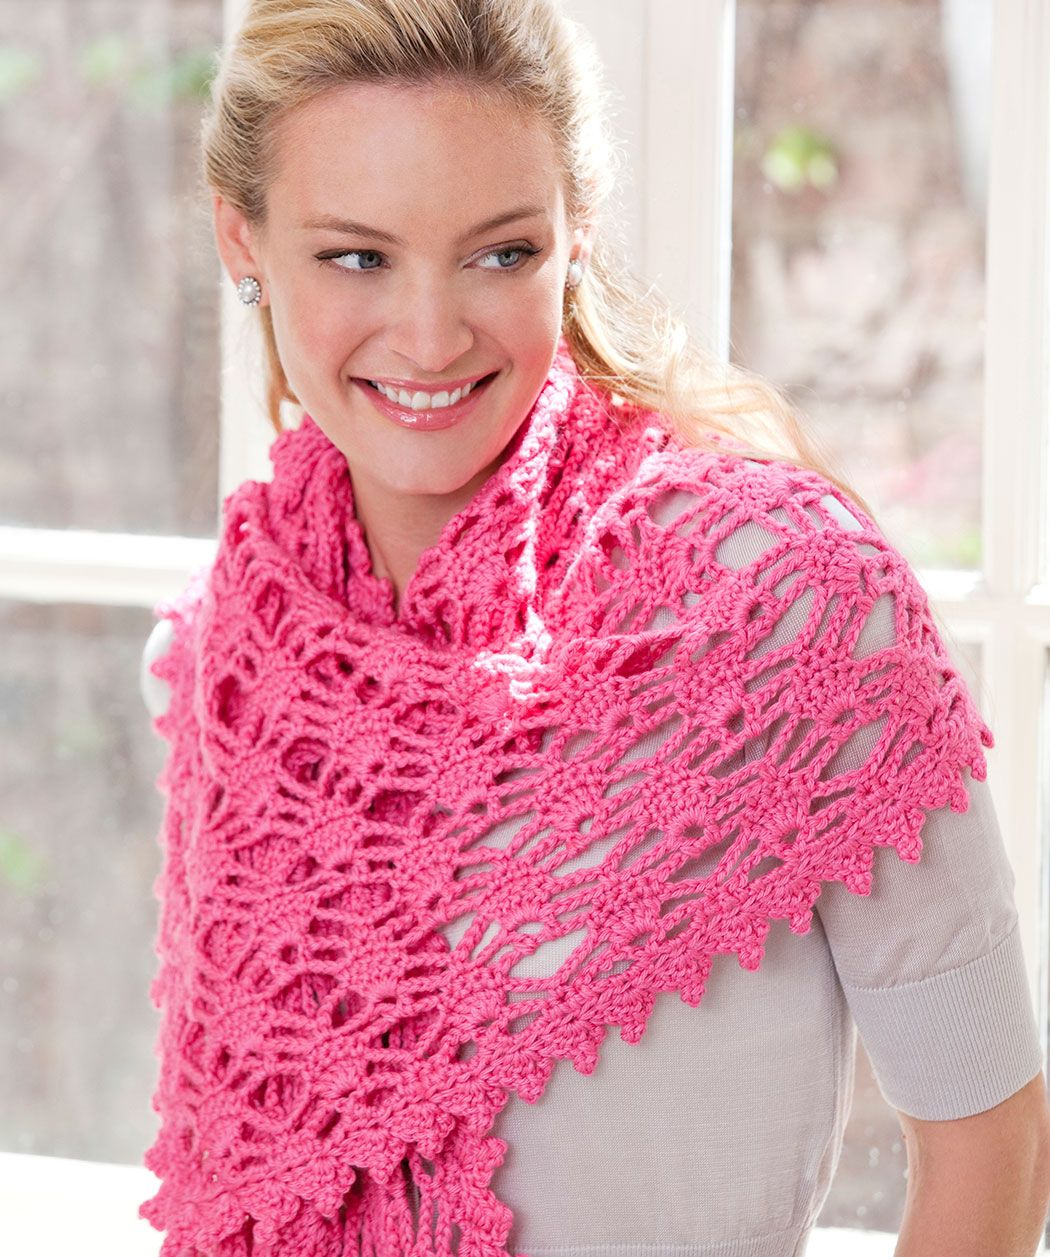 Lw5536 simply alluring shawl free crochet pattern red heart lw5536 simply alluring shawl free crochet pattern red heart yarns bankloansurffo Image collections